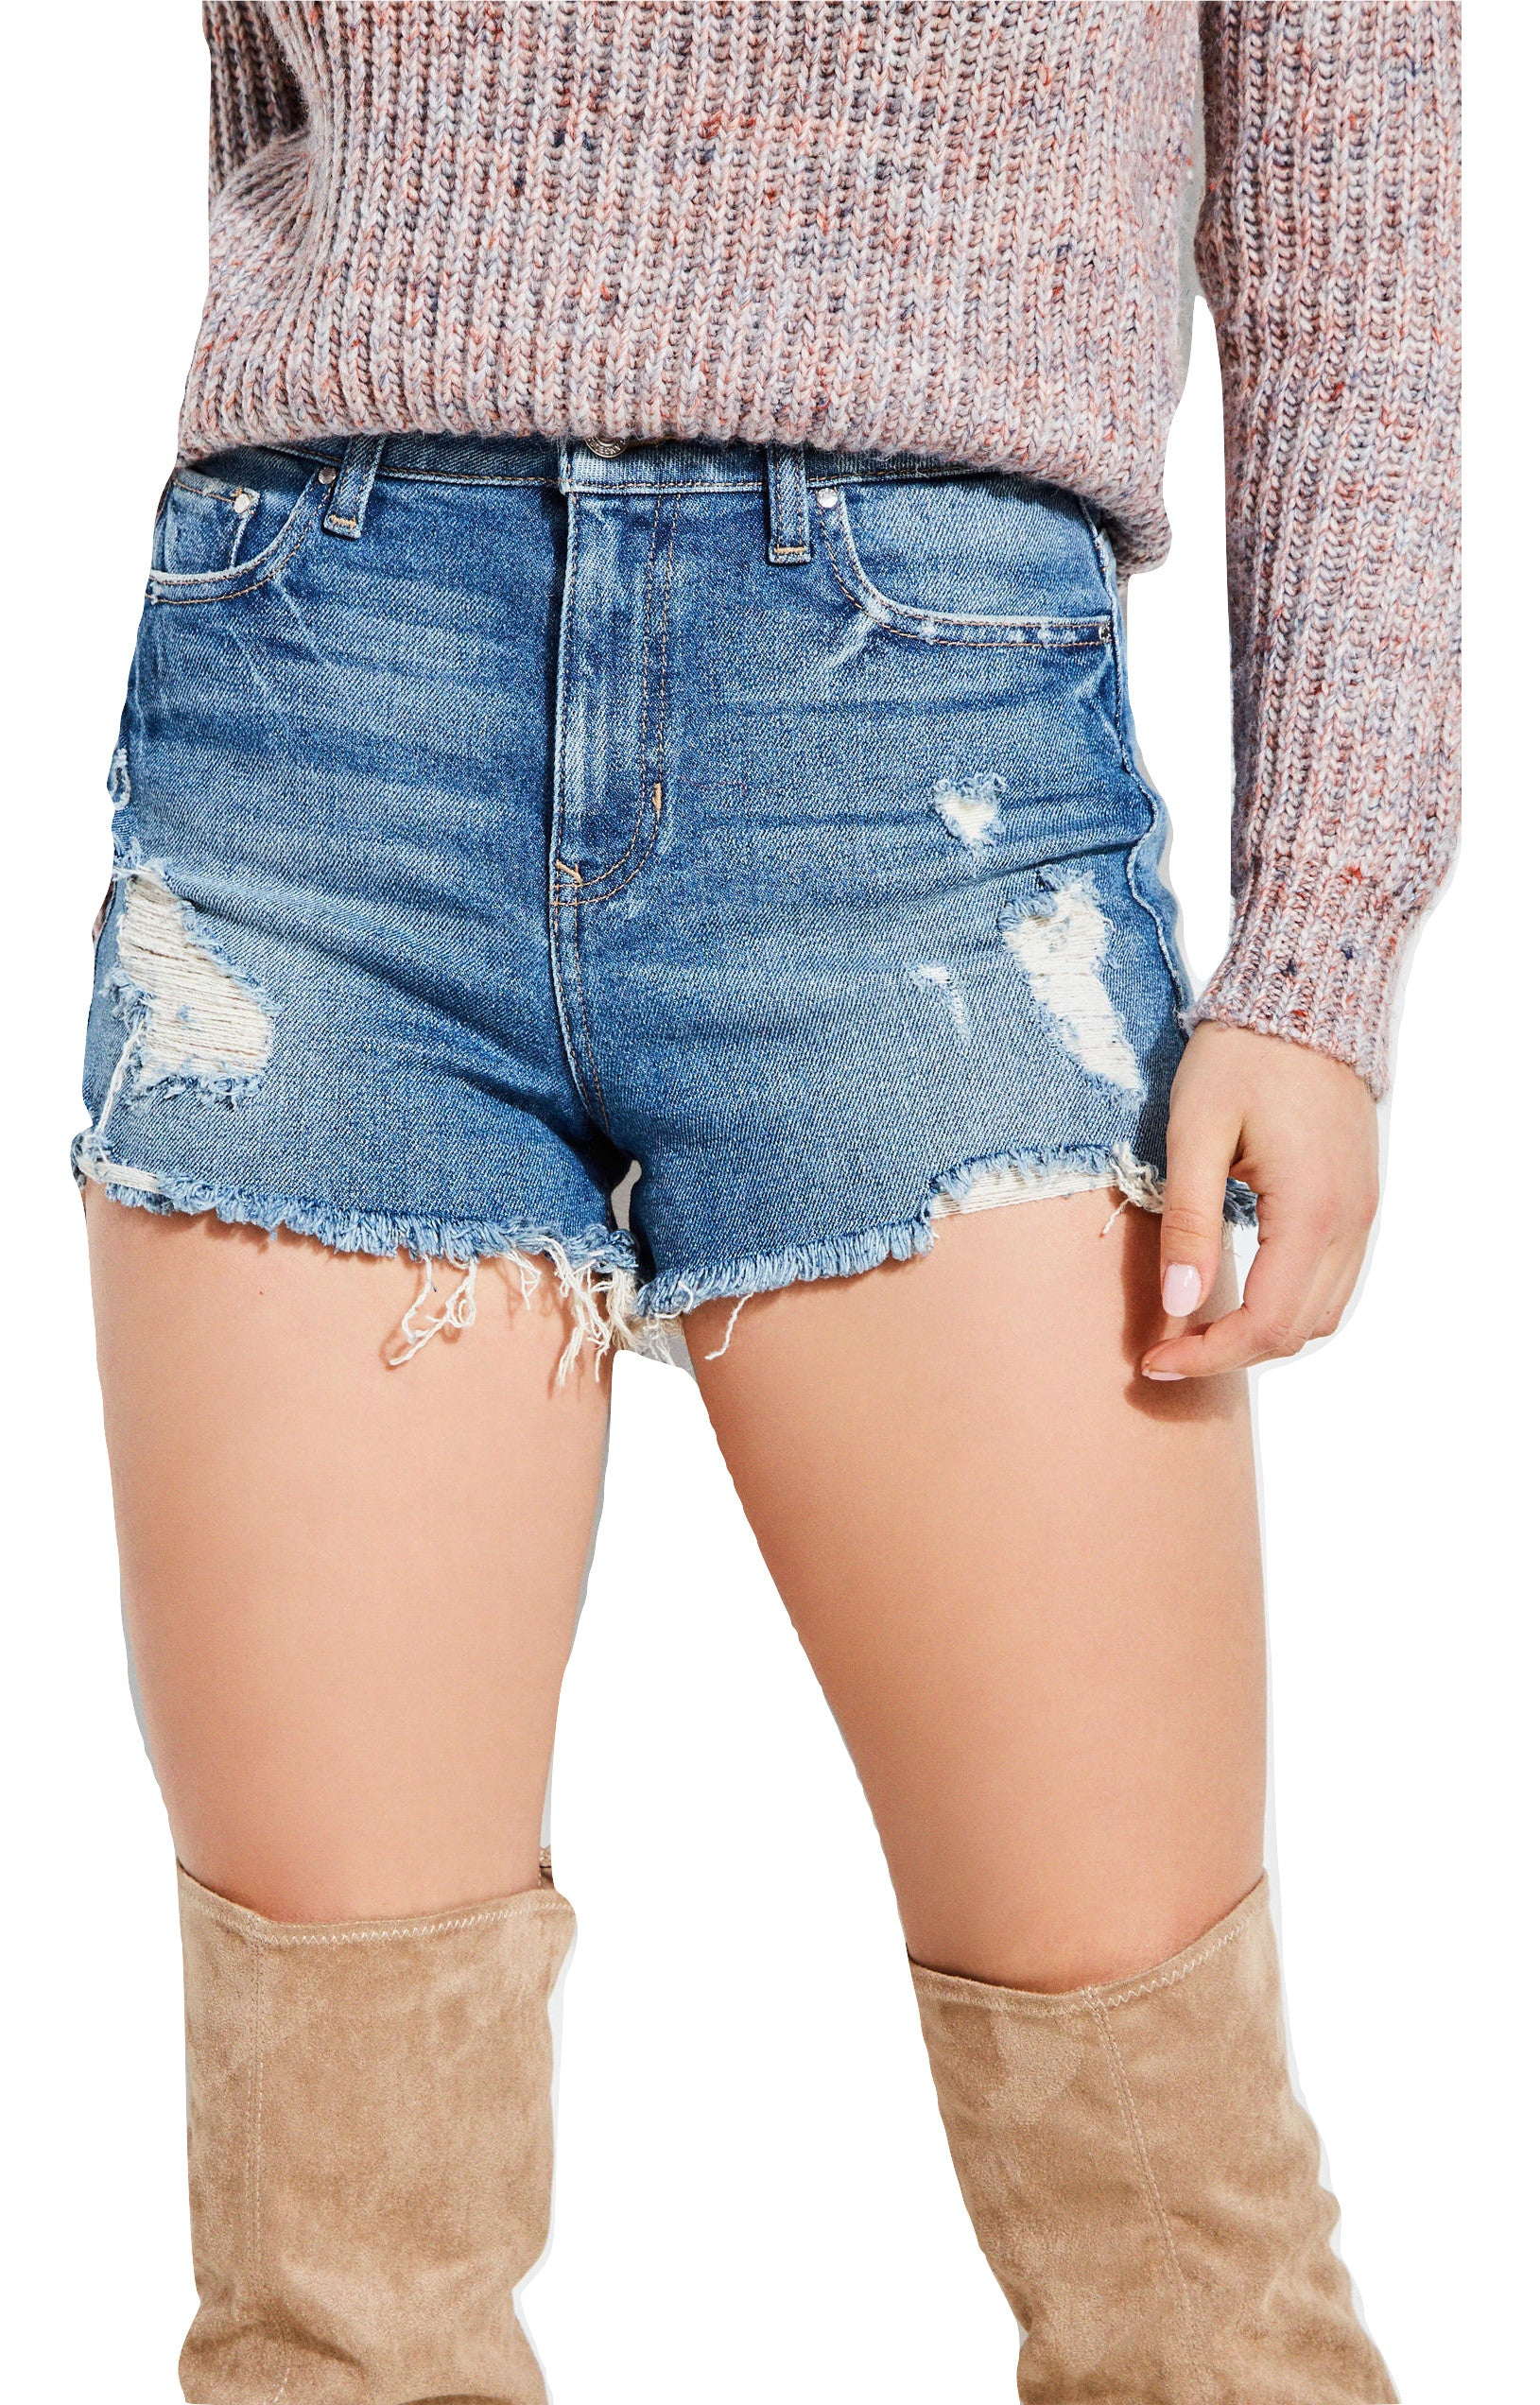 Guess Claudia High-Rise Denim Shorts Doheny Blue Wash - Gear Relapse